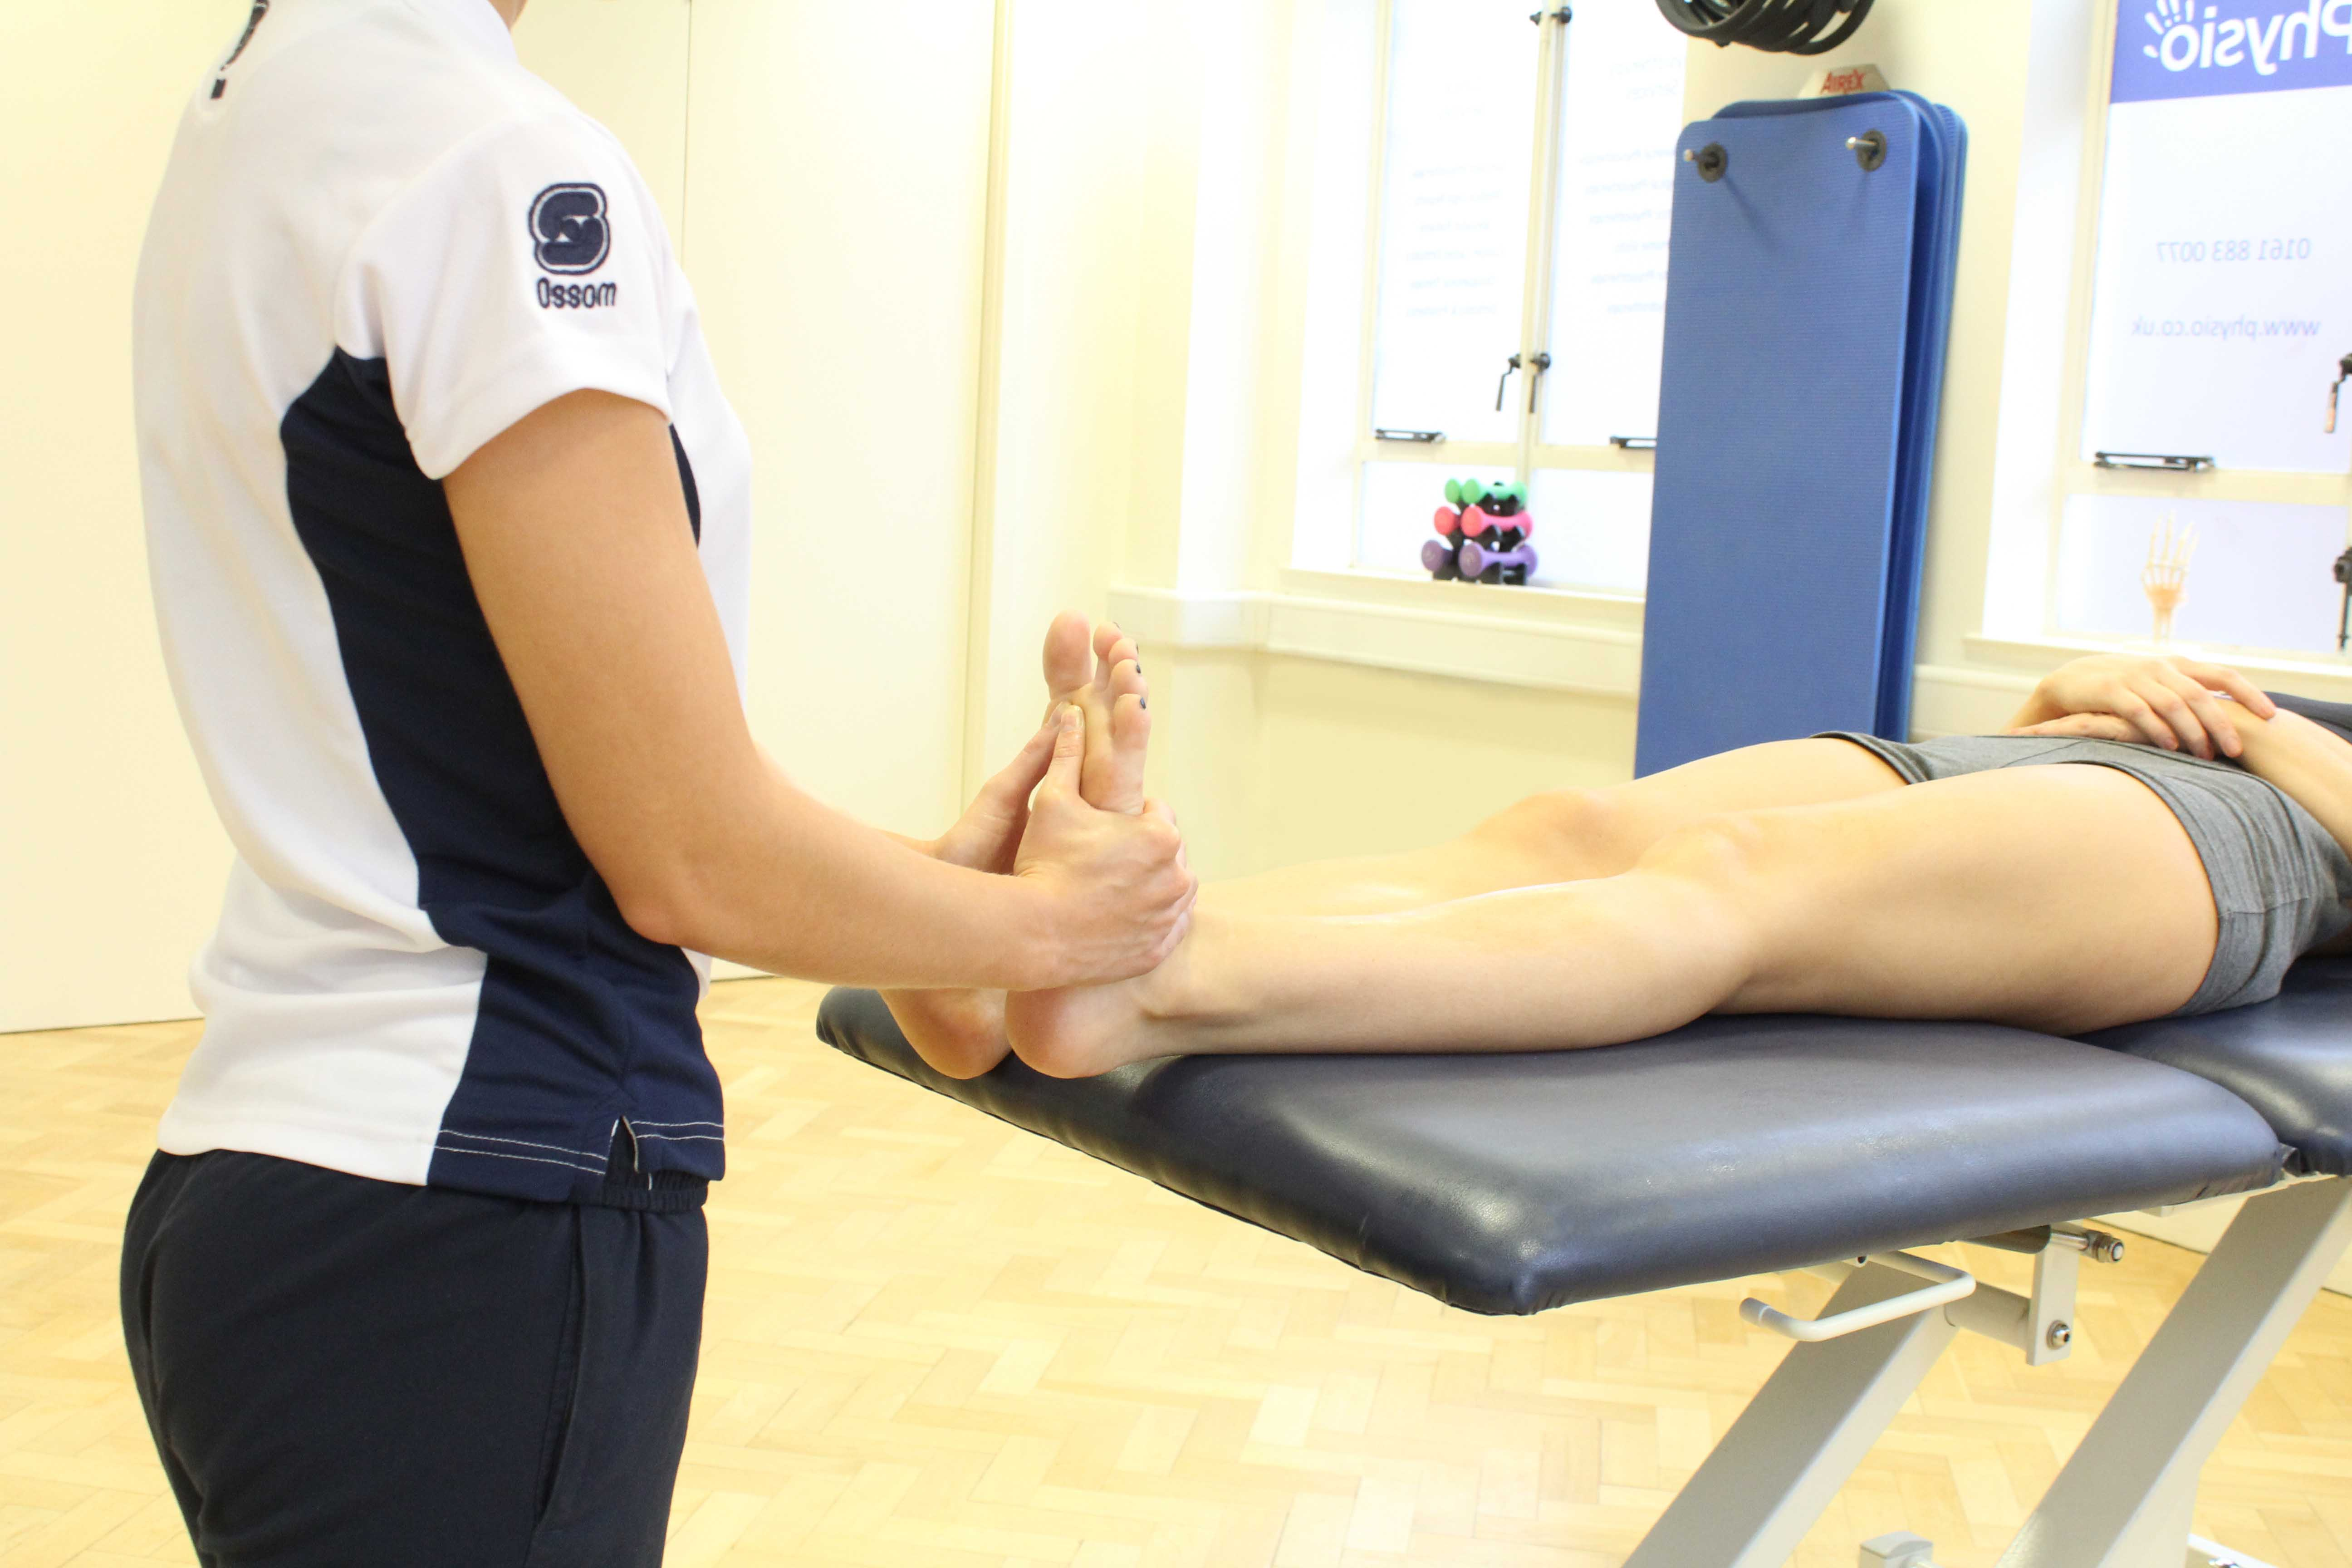 Trigger point massage of the planta fascia under the foot.